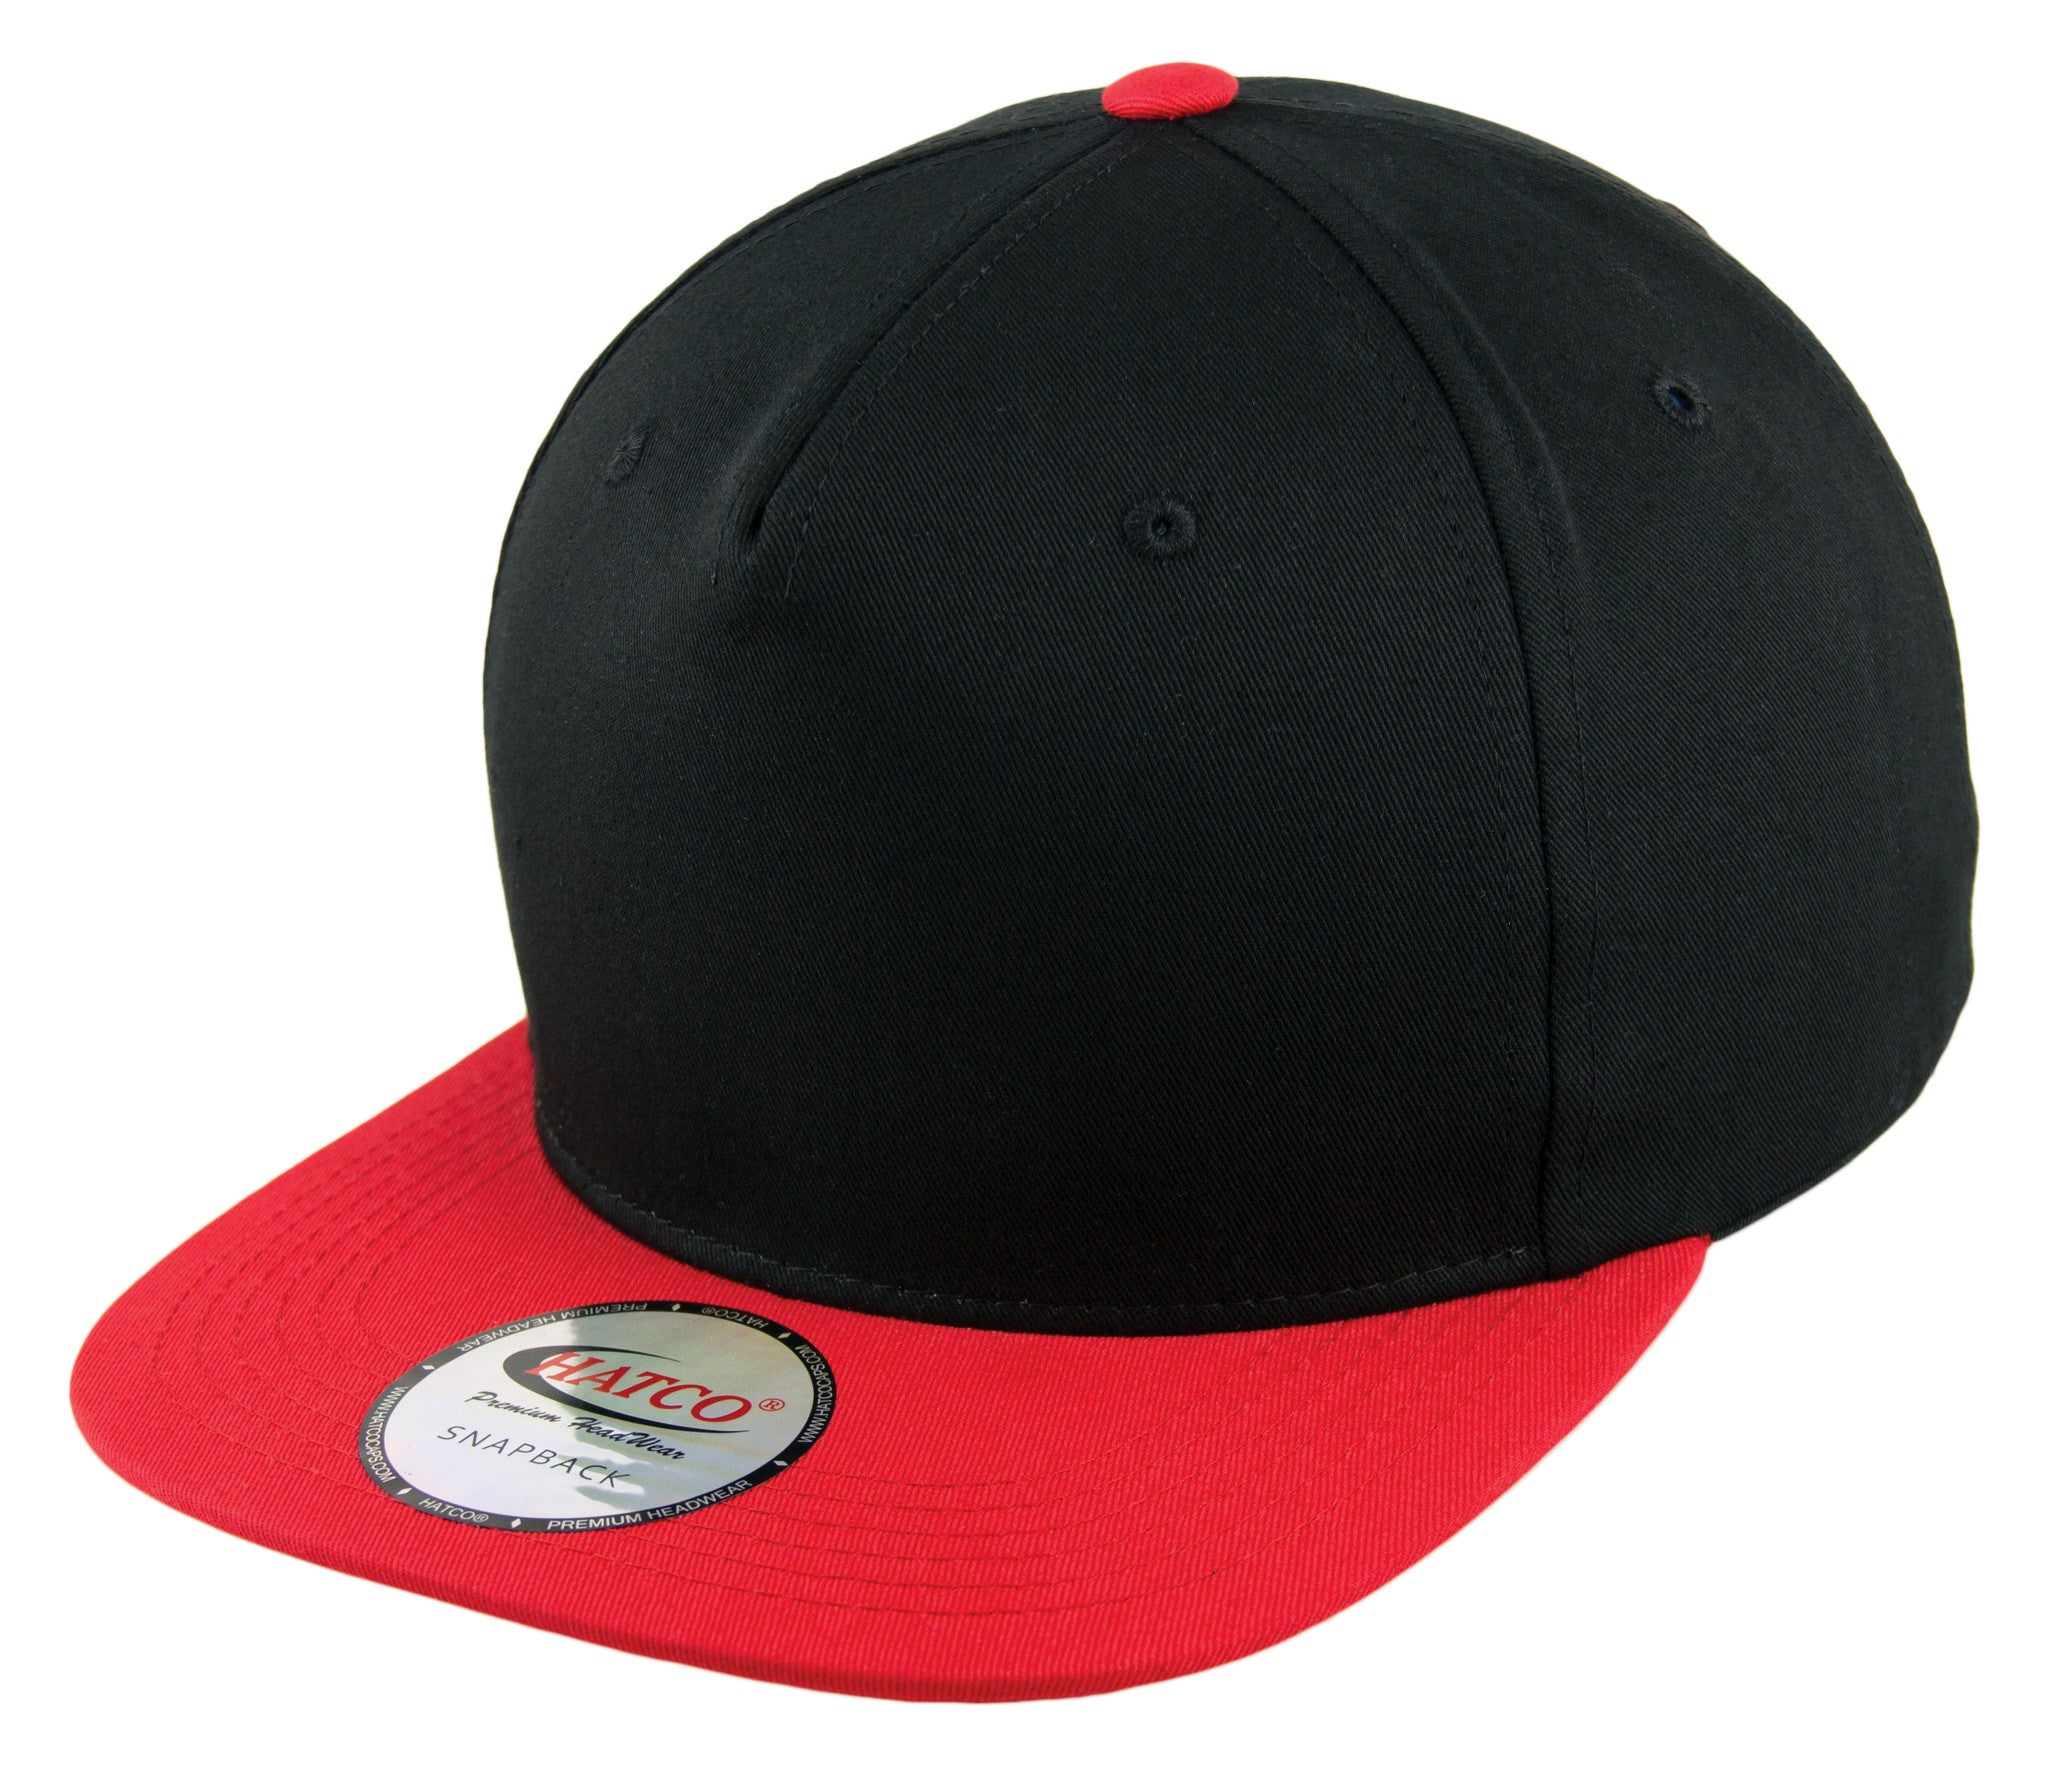 01687f4de91 Blank 5 Panel Snapback Cap - Black Red - HATCOcaps.com